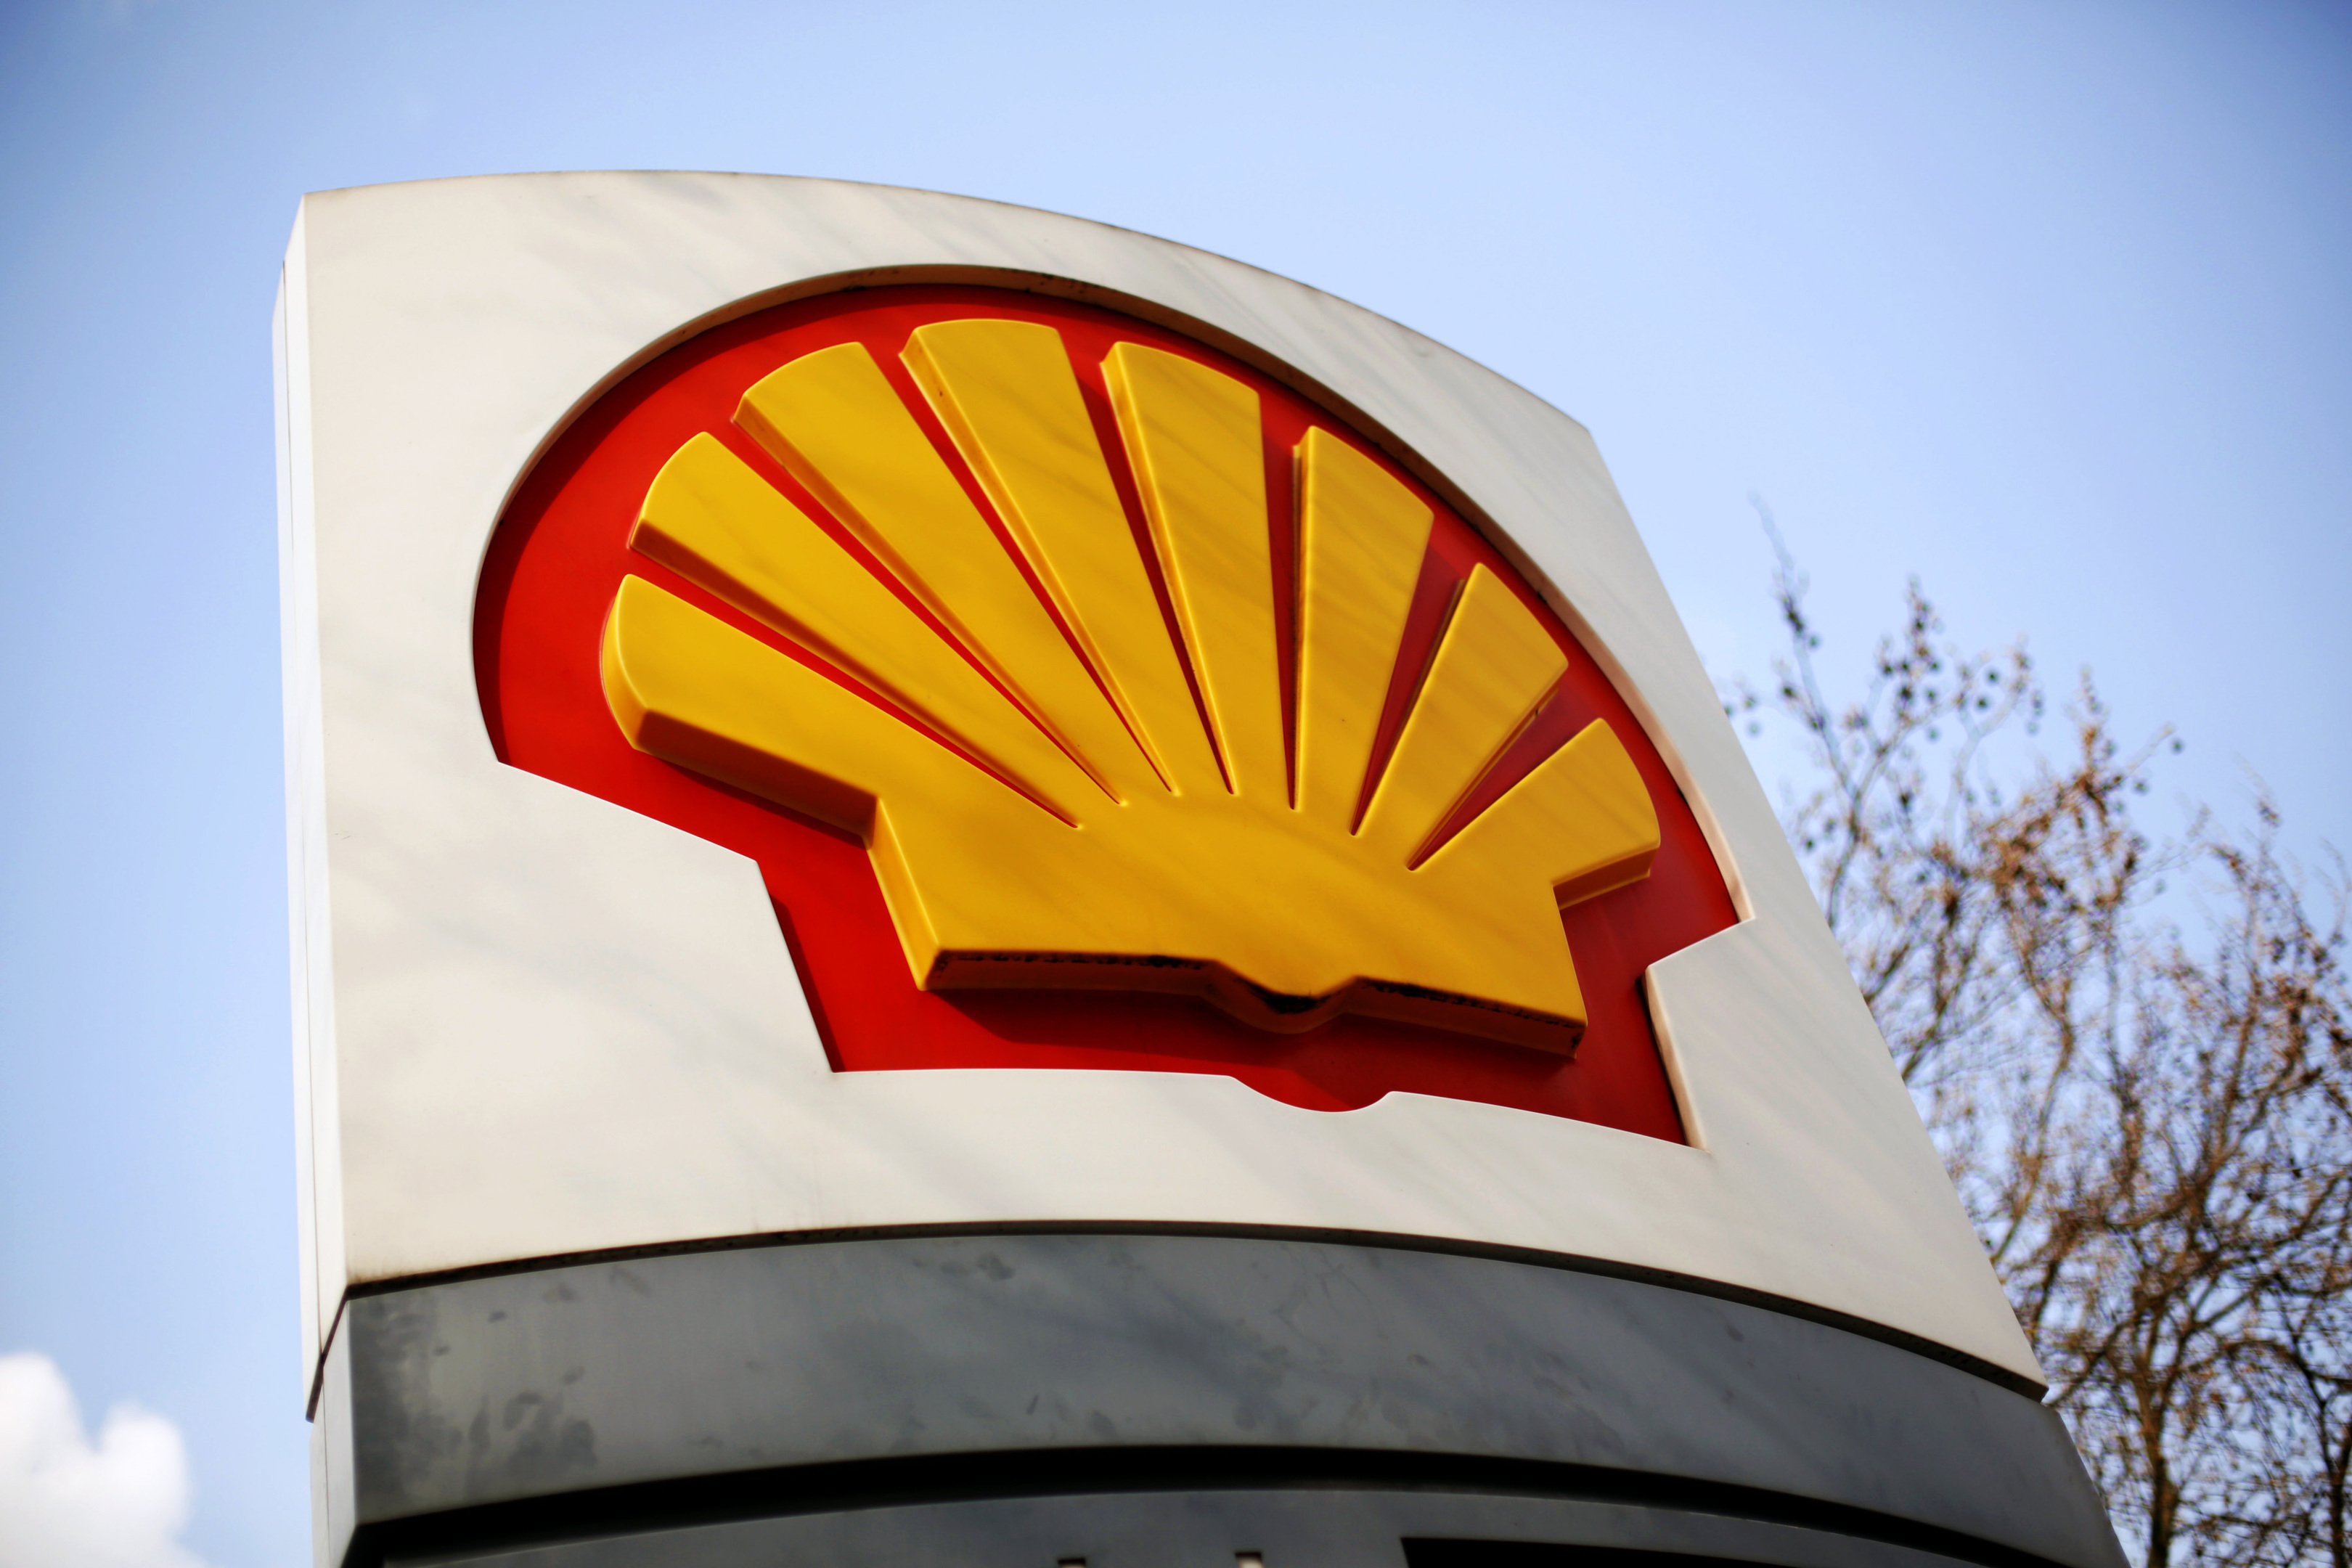 Shell is blaming the falling oil price for the cuts.